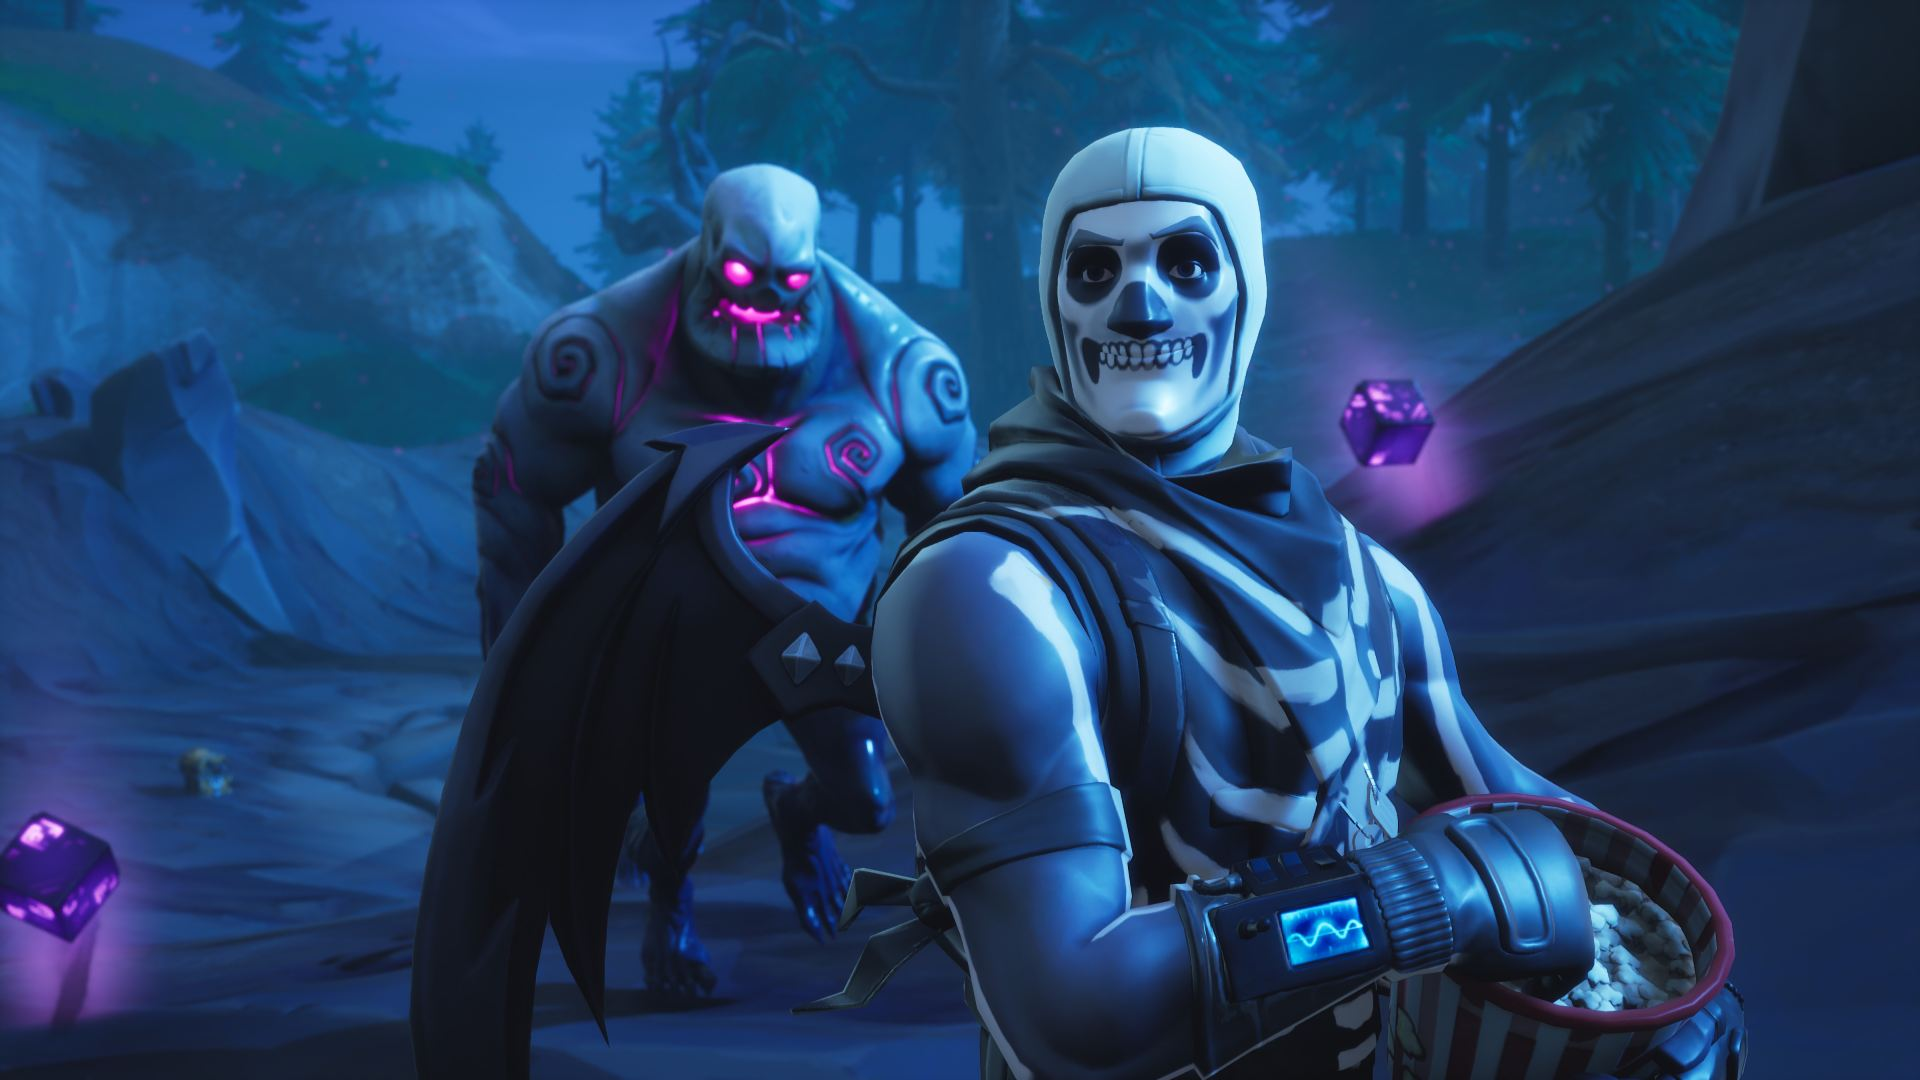 Skull Trooper Fortnite Themes